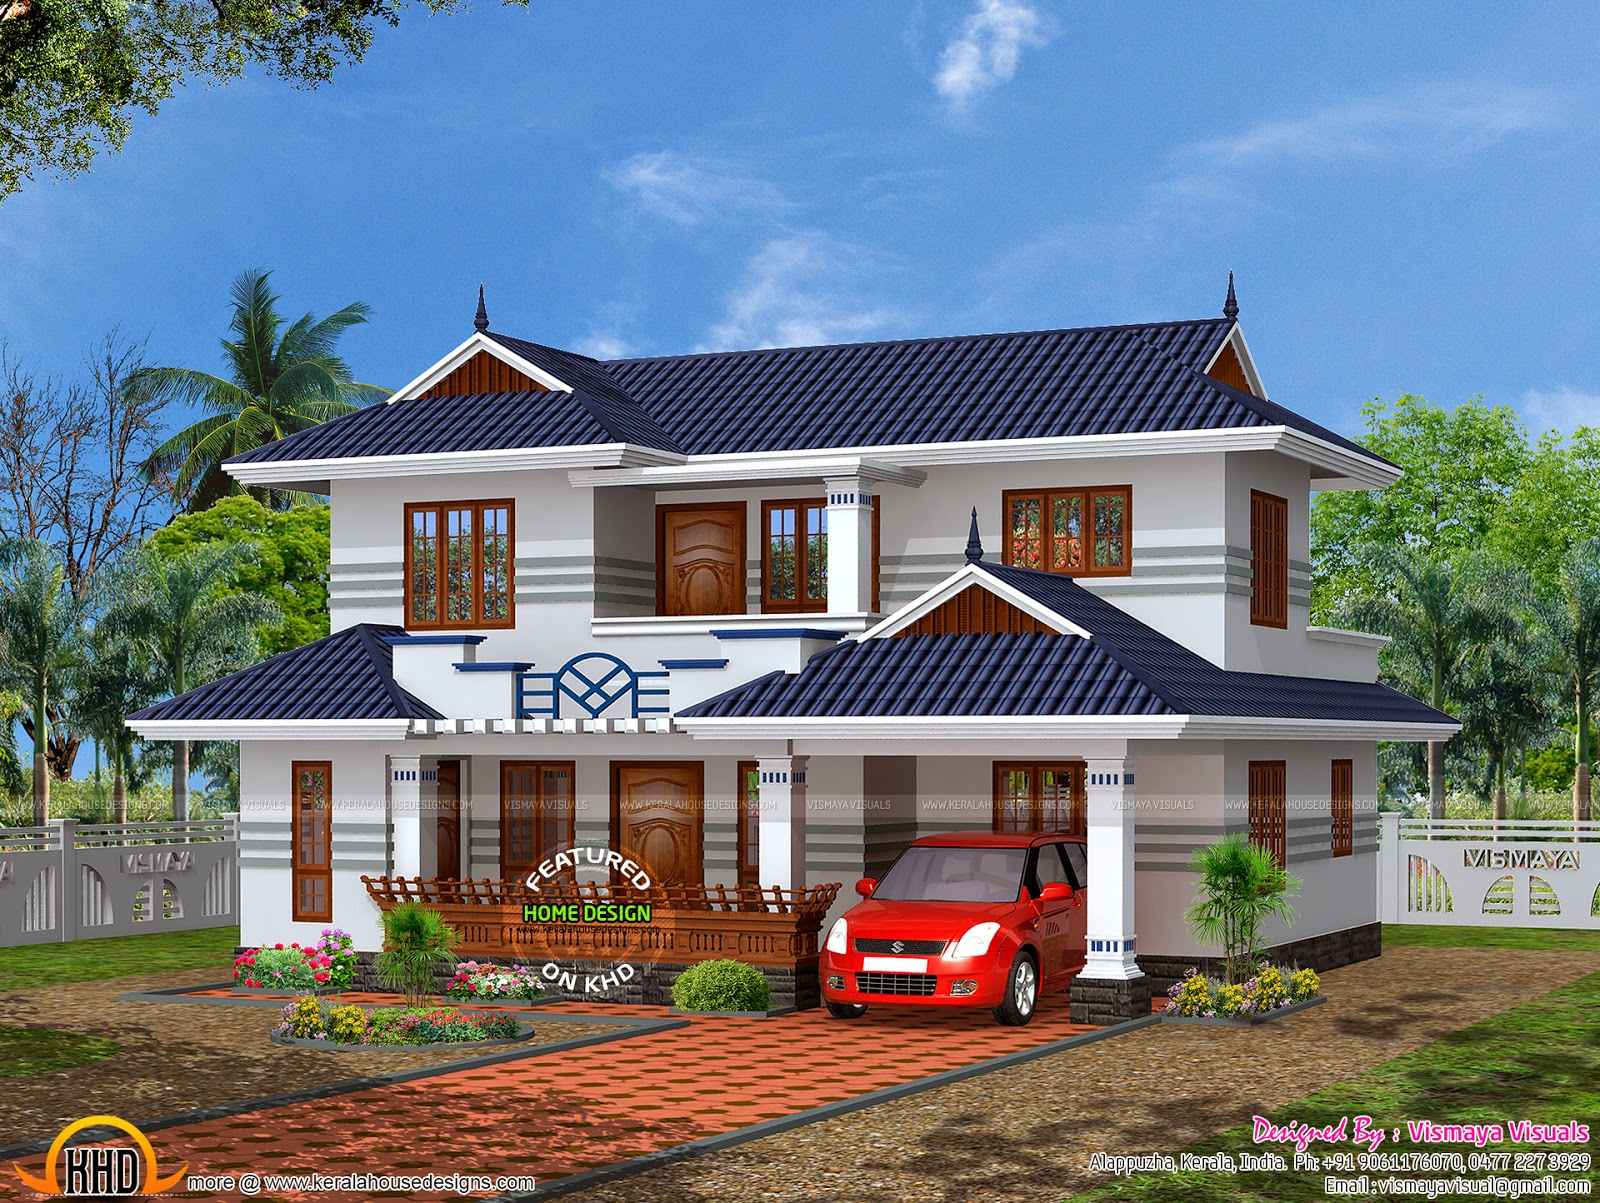 Typical kerala house plan kerala home design and floor plans for Kerala house models photos